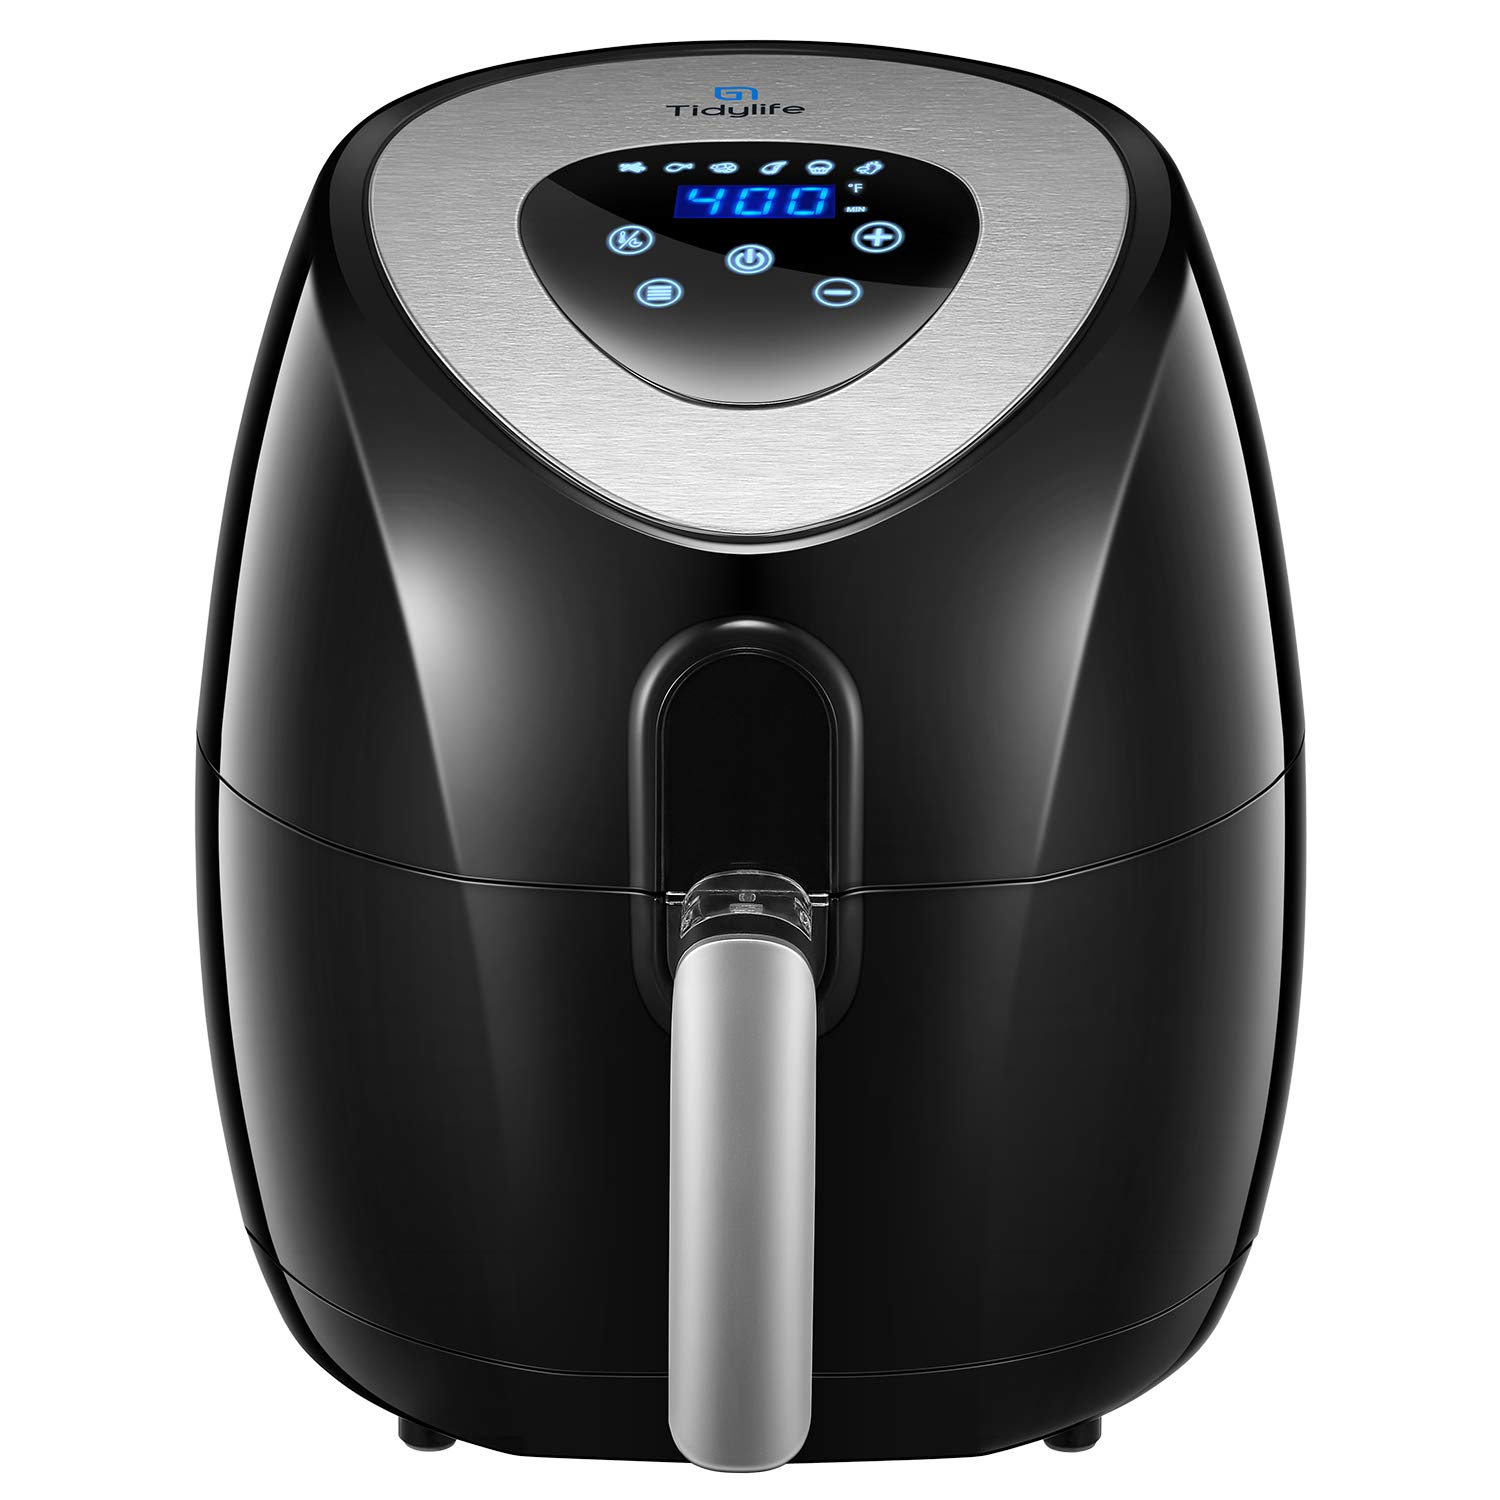 Air Fryer, Tidylife 4.5QT Digital Hot Air Fryer Oven, Oilless Fast Cook, LED Touchscreen with Cooking Presets, Nonstick Basket Easy to Disassemble and Clean, with 50 Recipes,1500W